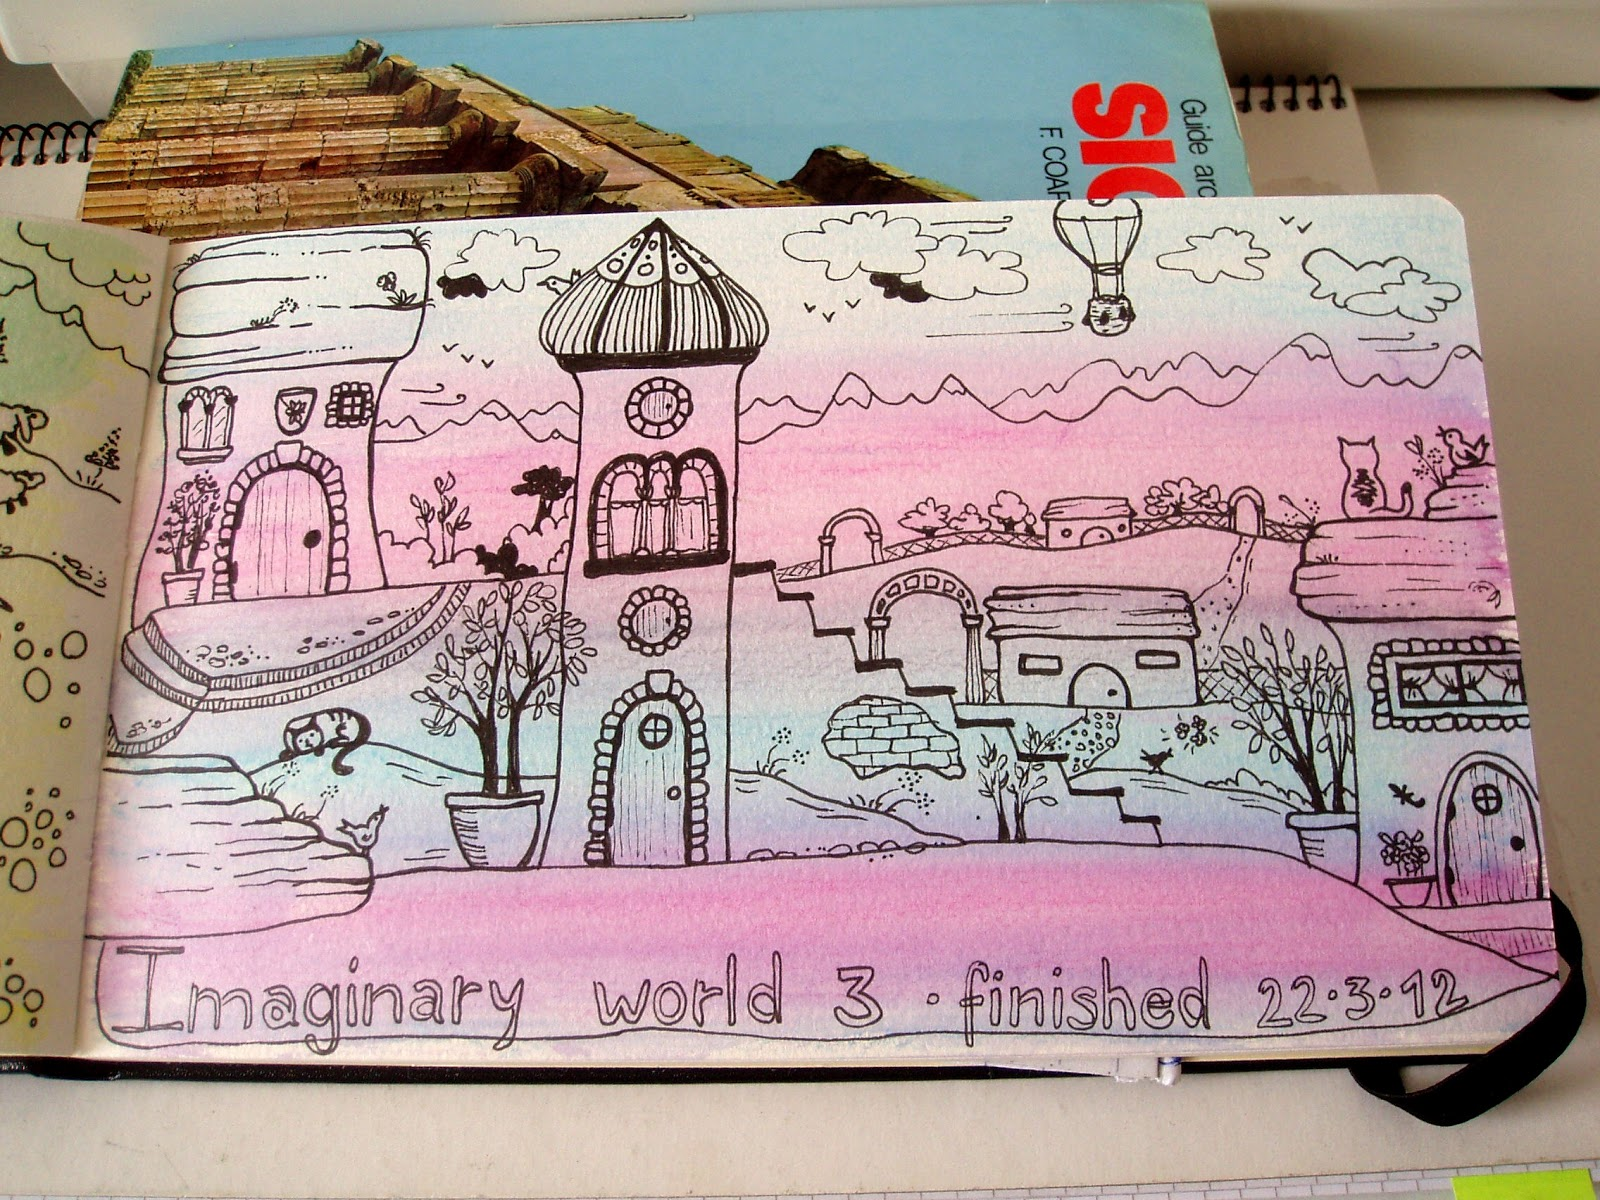 It's just a graphic of Satisfactory Drawing Imaginary World